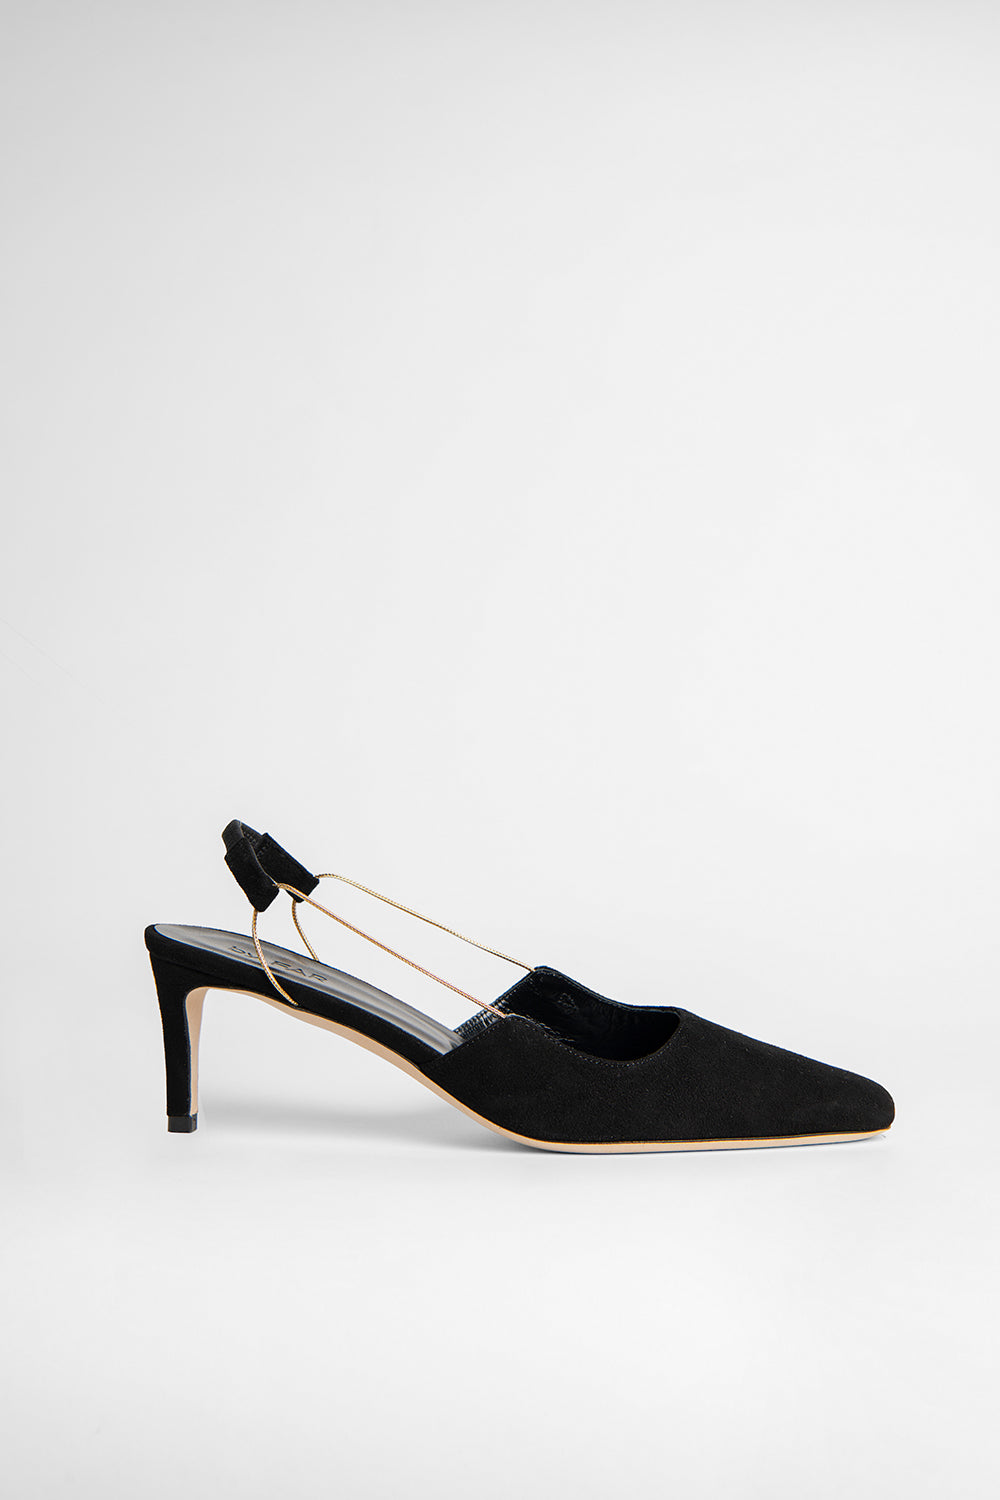 Gabriella Black Suede Leather